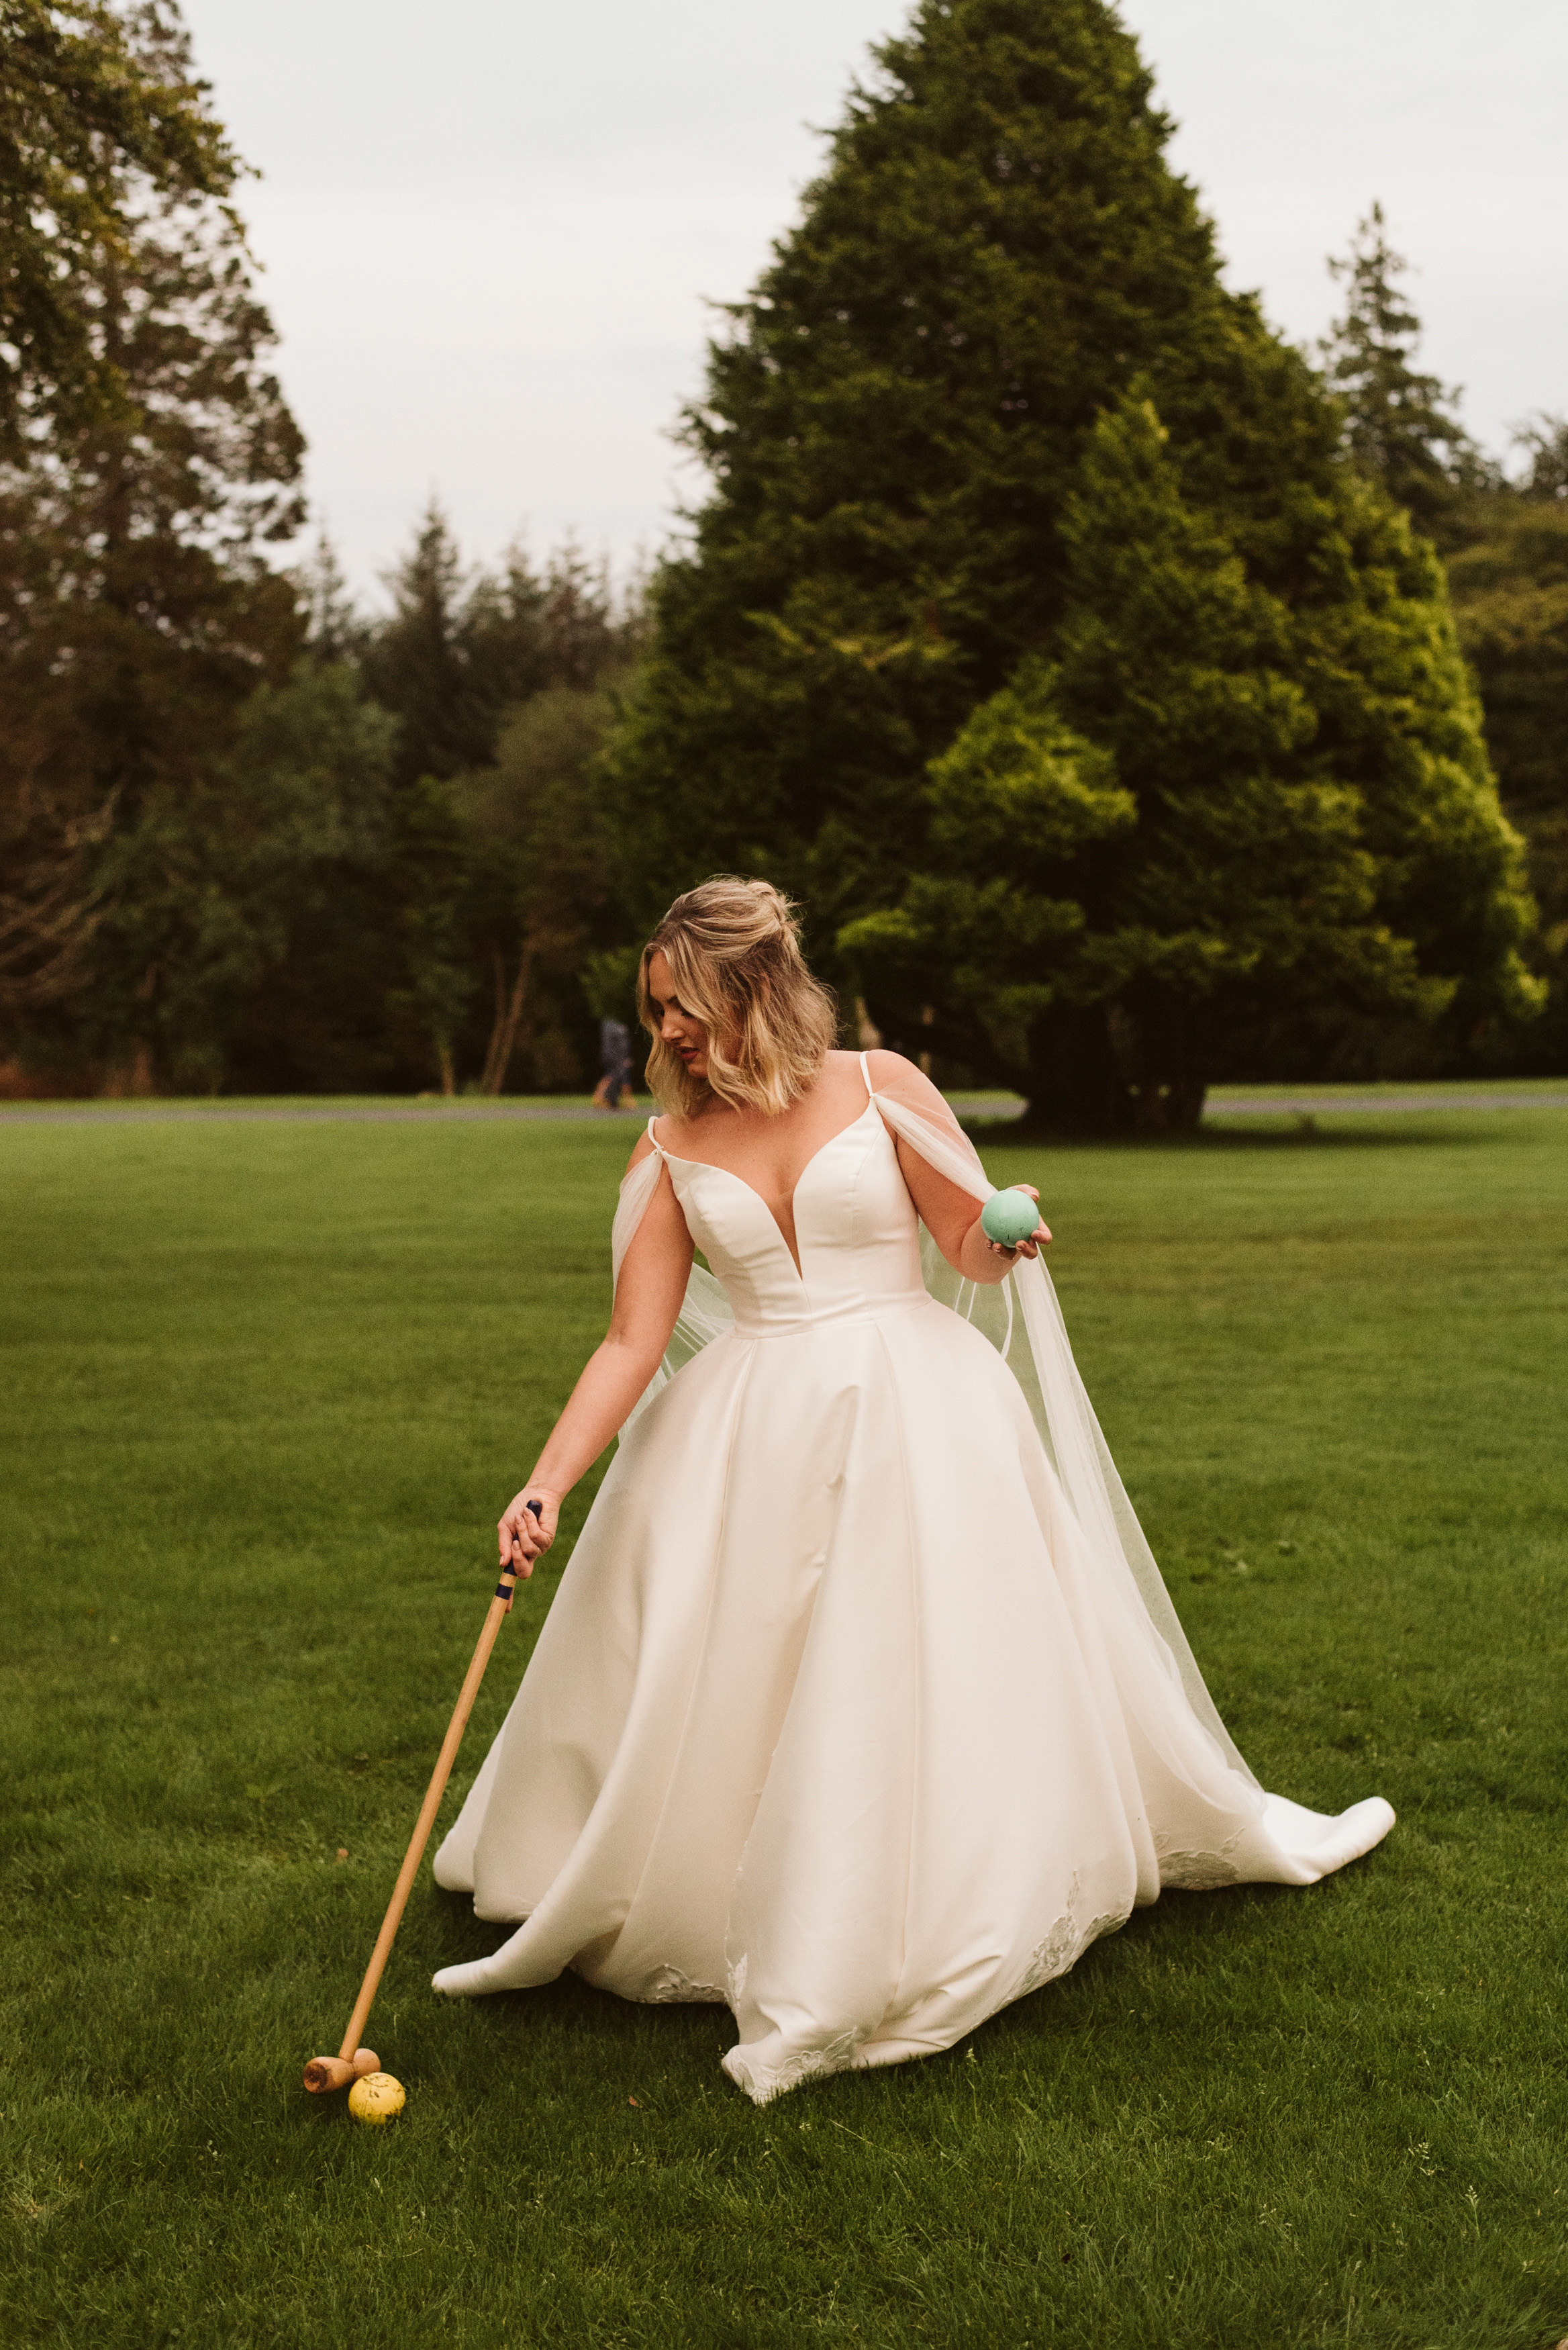 Bride playing croquet in a mikado ballgown wedding dress with straps and a tulle cape on the grounds of Lough Eske Castle in Ireland